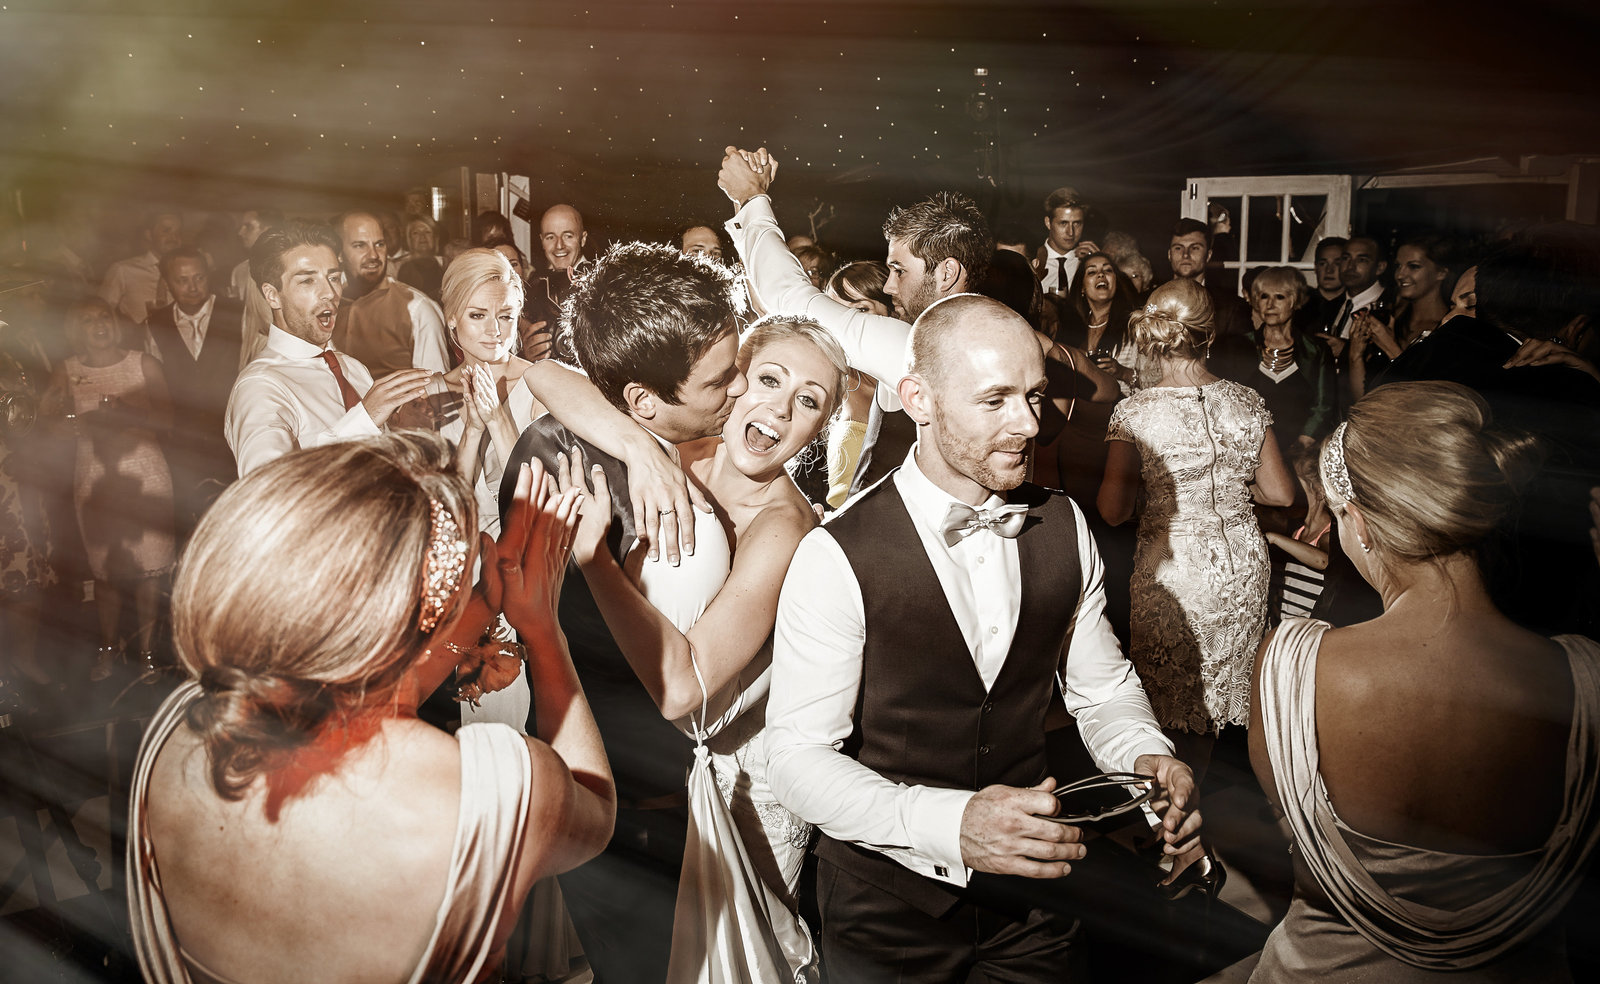 Wedding dancing at the Finch's Arms